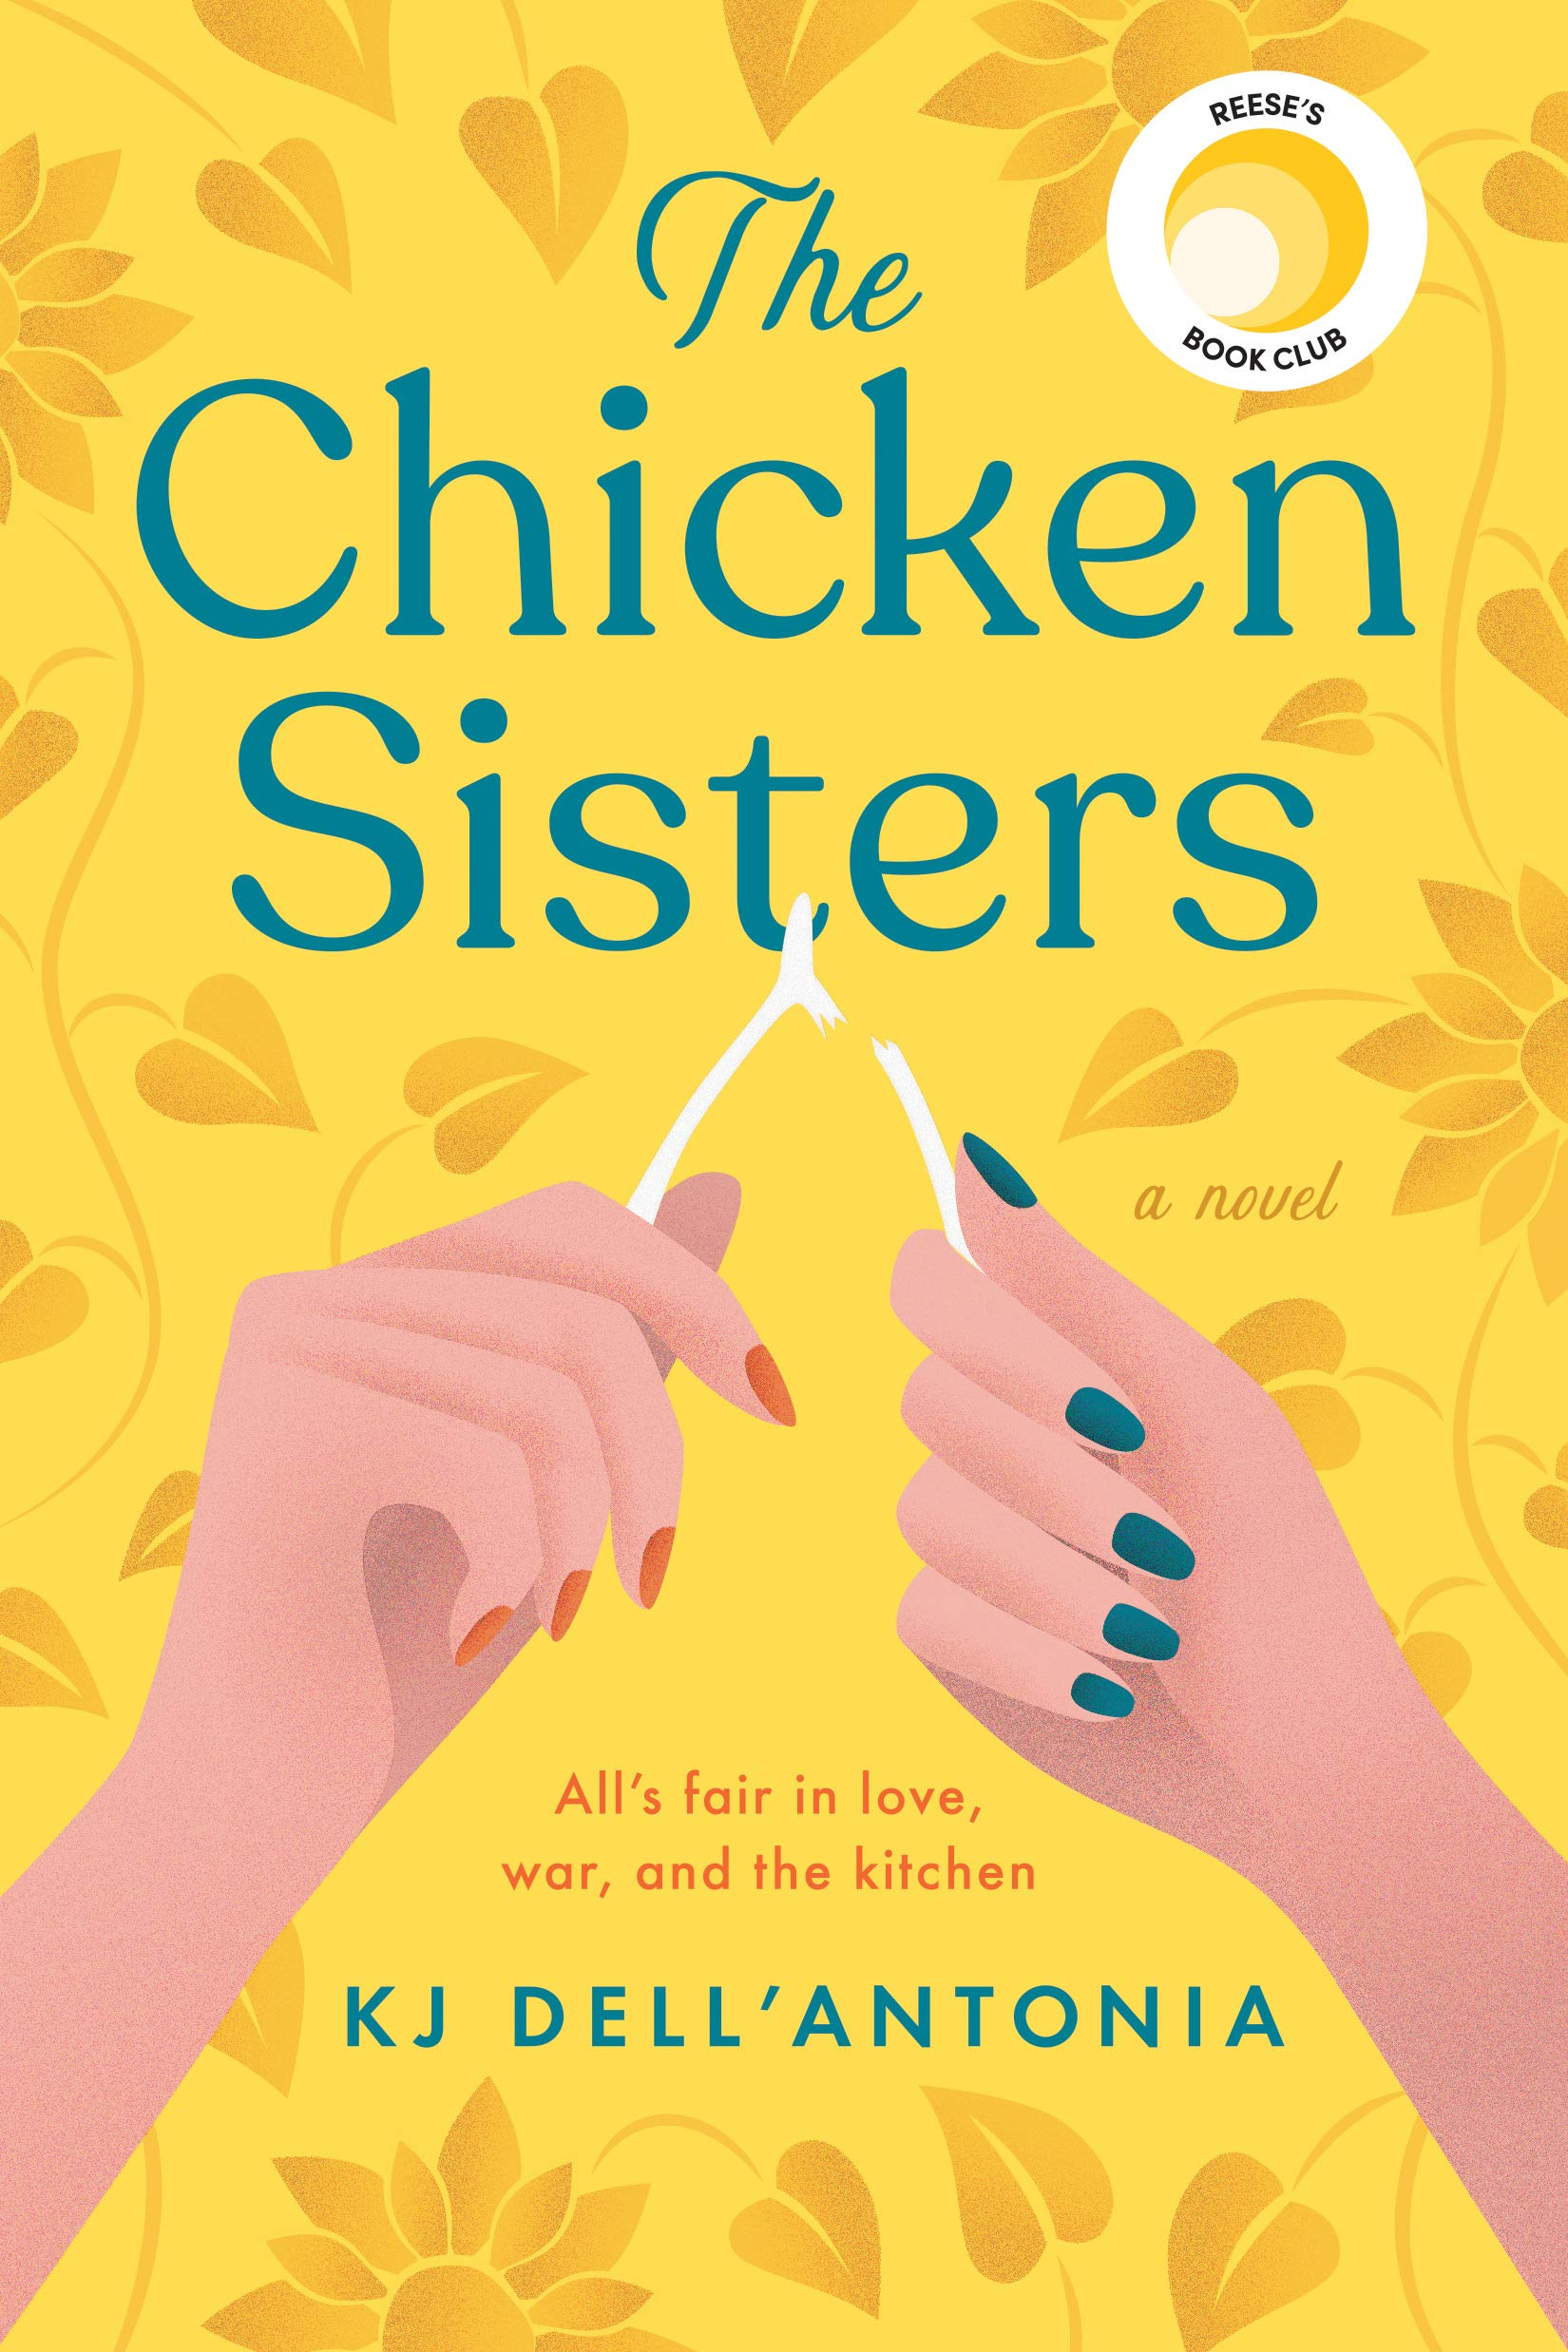 The Chicken Sisters by K.J. Dell'Antonia